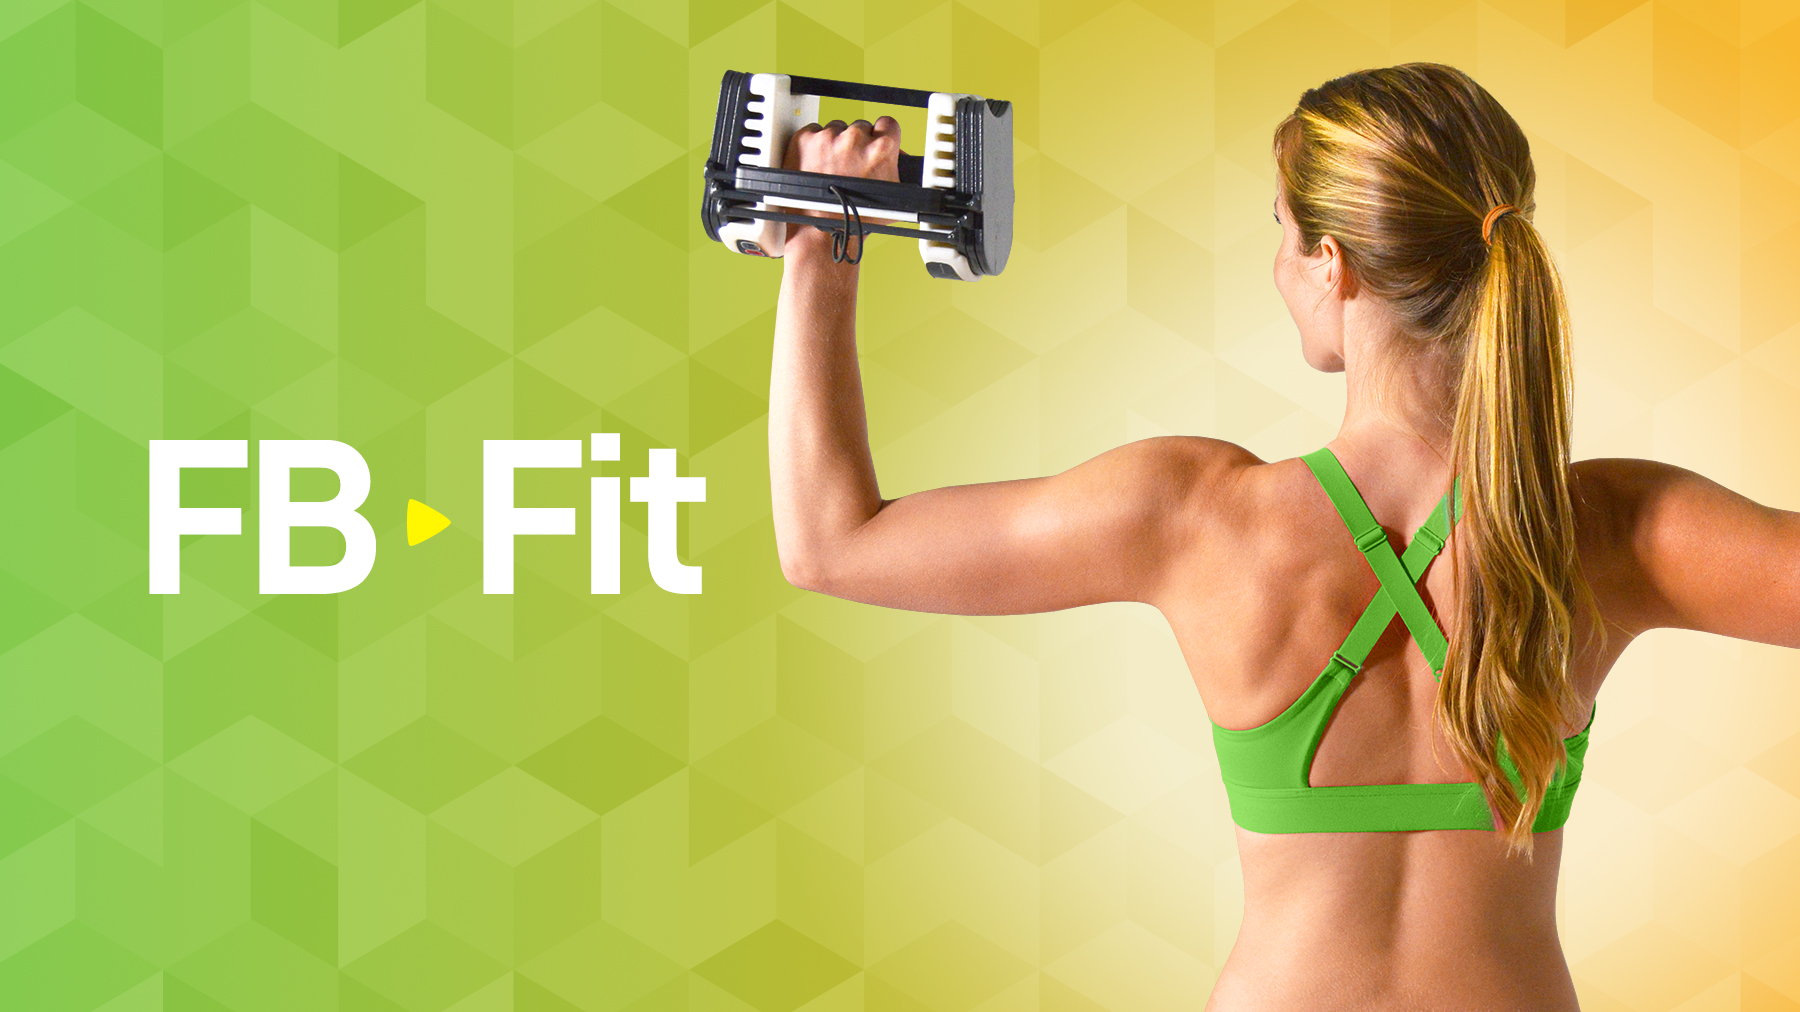 Workout Calendar To Lose Weight : Fb fit week fat loss program to lose weight build